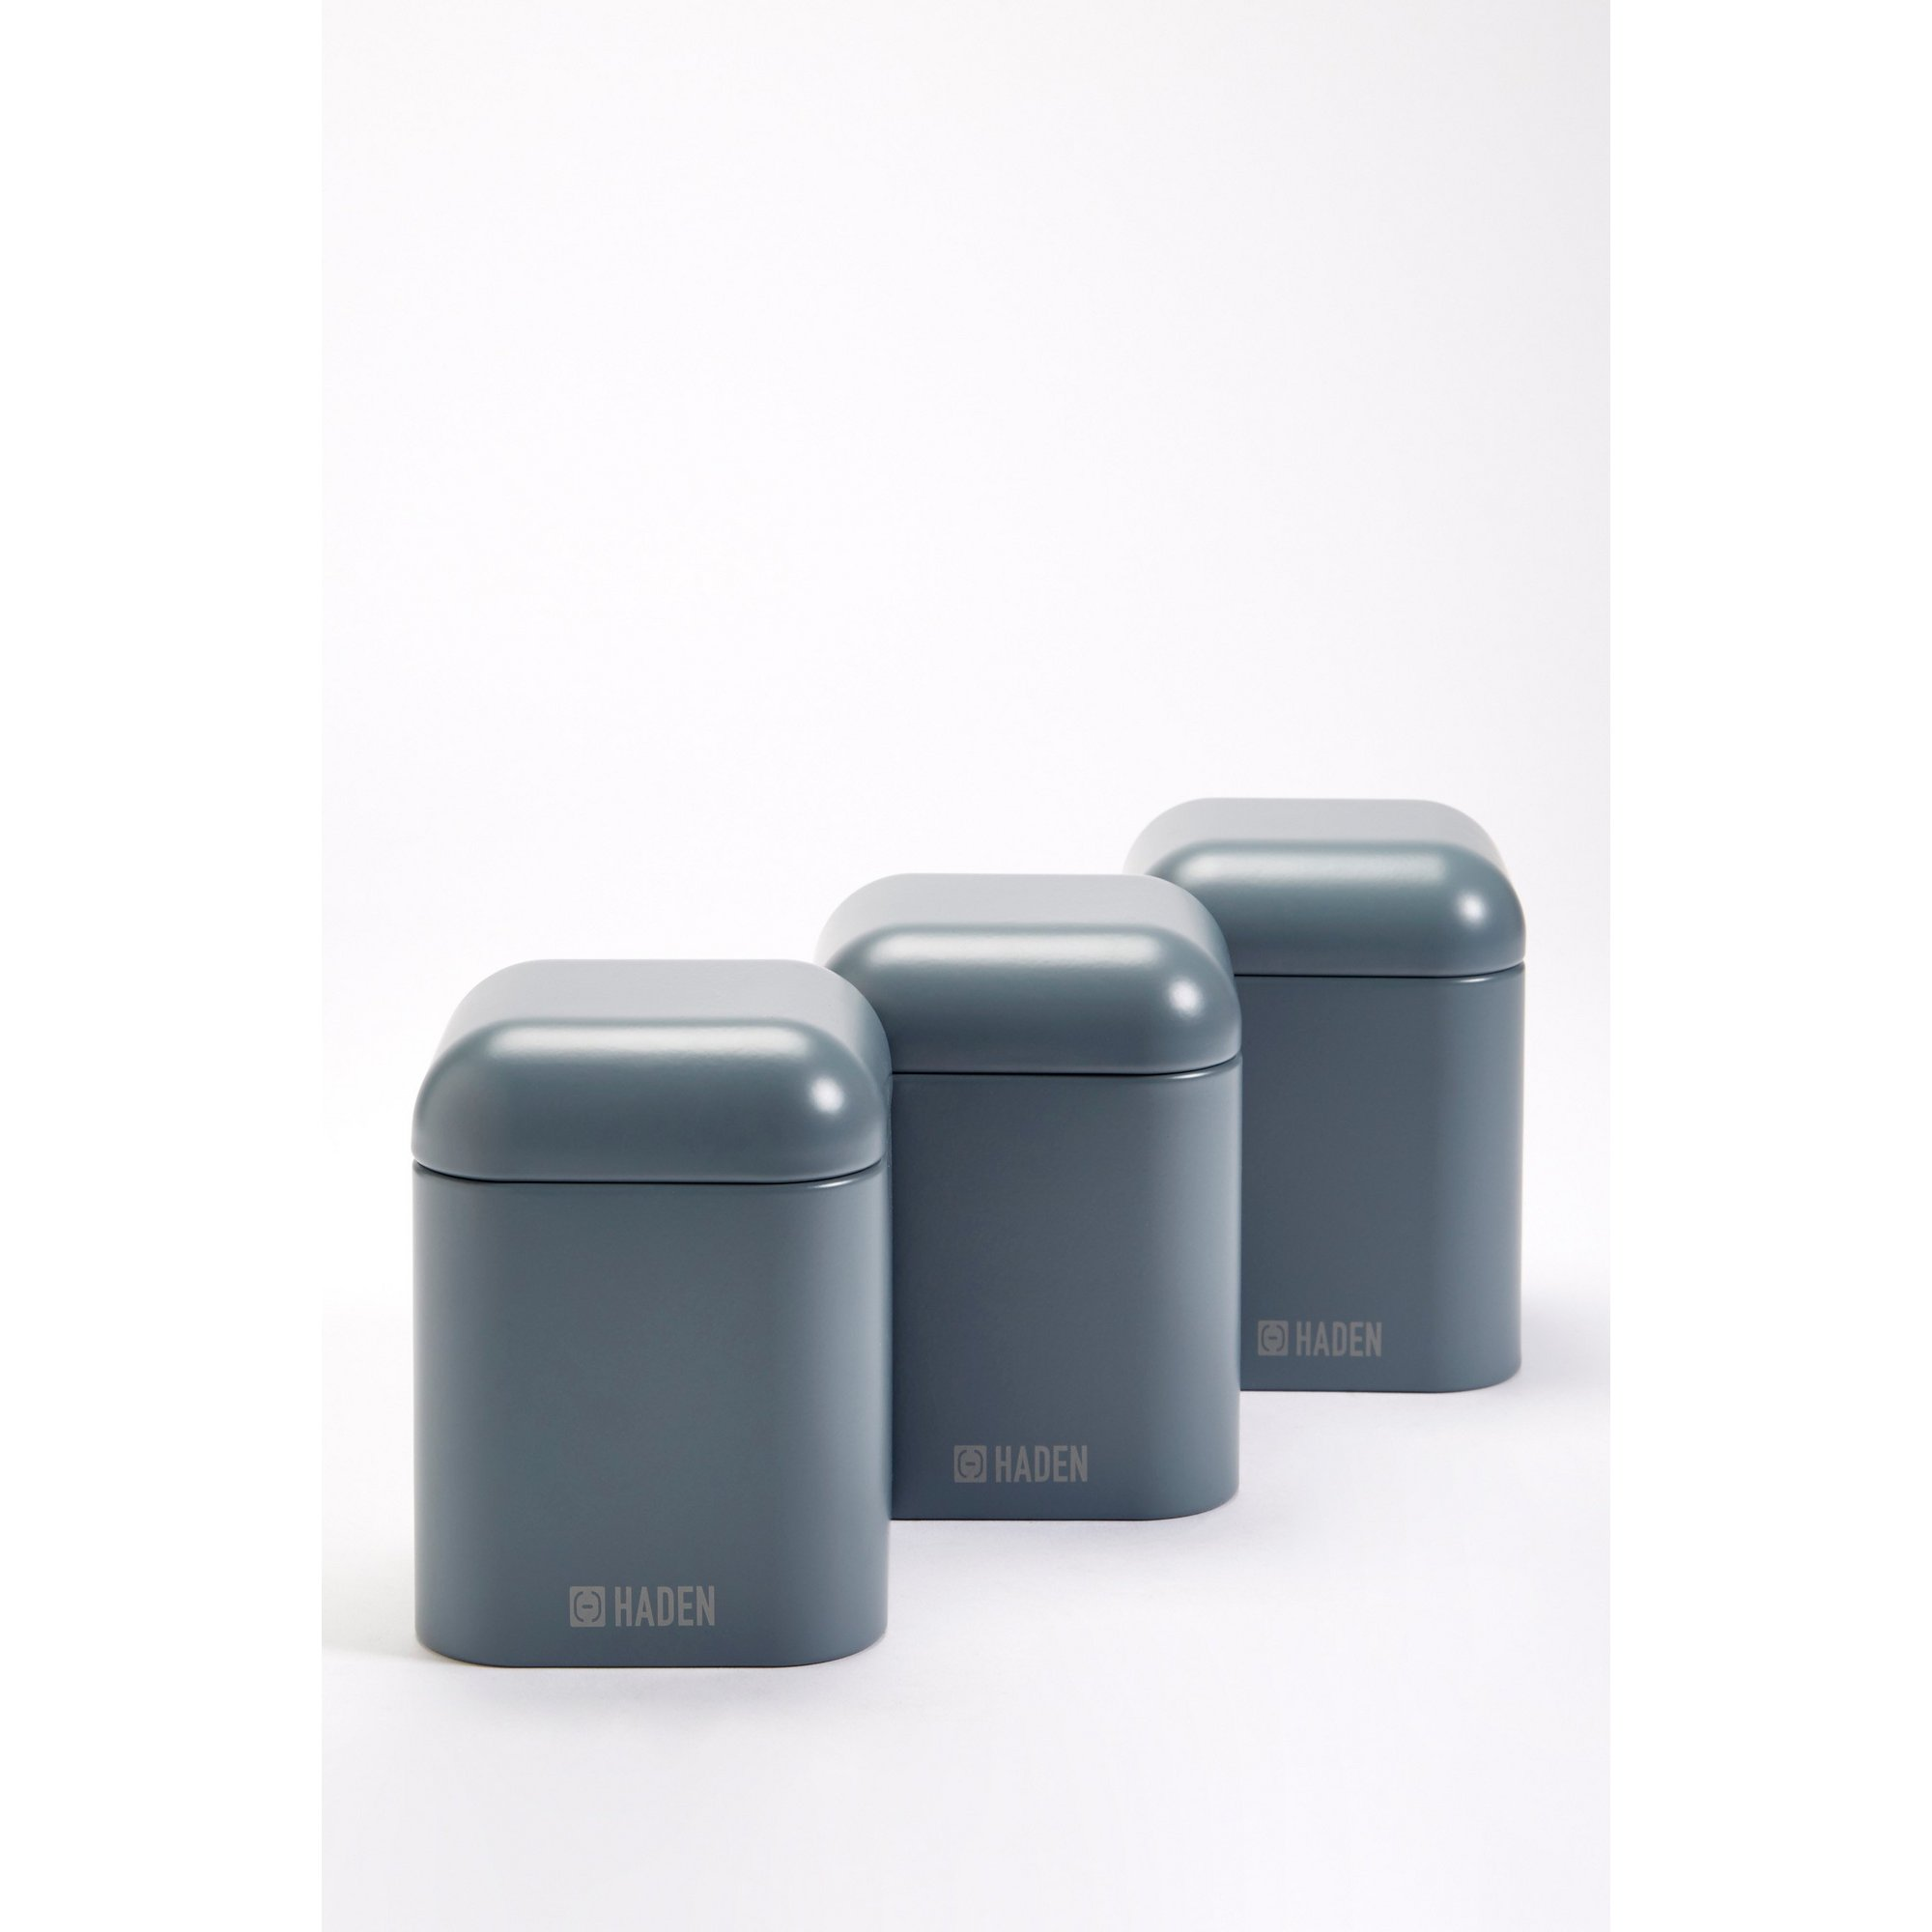 Image of Haden Perth Set of 3 Canisters